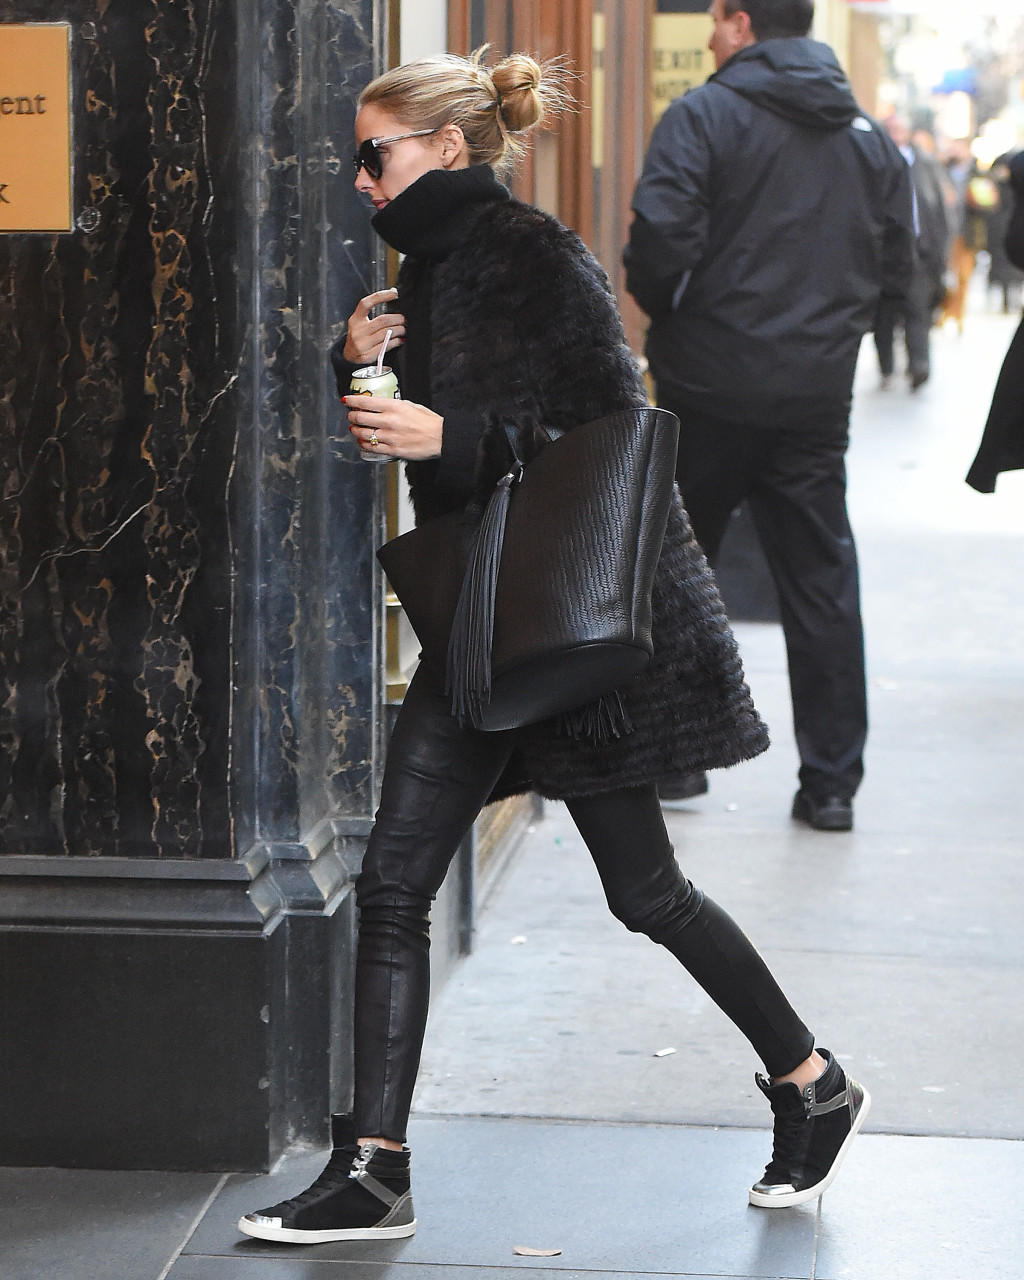 Olivia Palermo in a black turtleneck top shaggy coat and black leggings